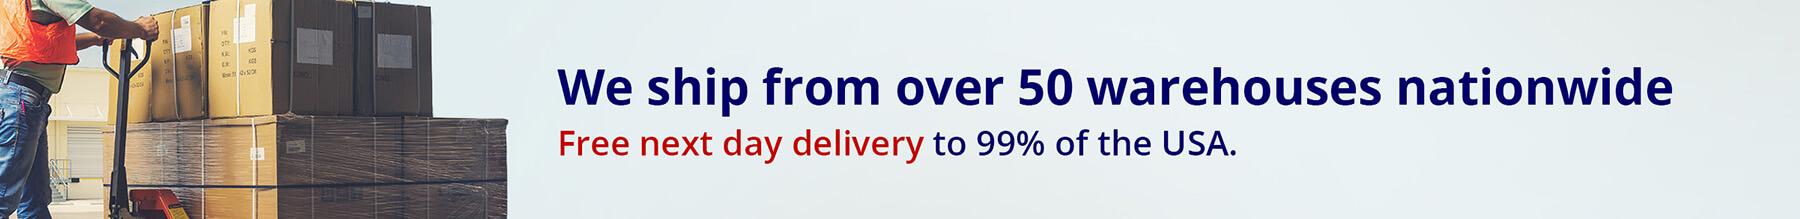 We ship from over 50 warehouses nationwide. Free next day delivery to 99% of the USA.